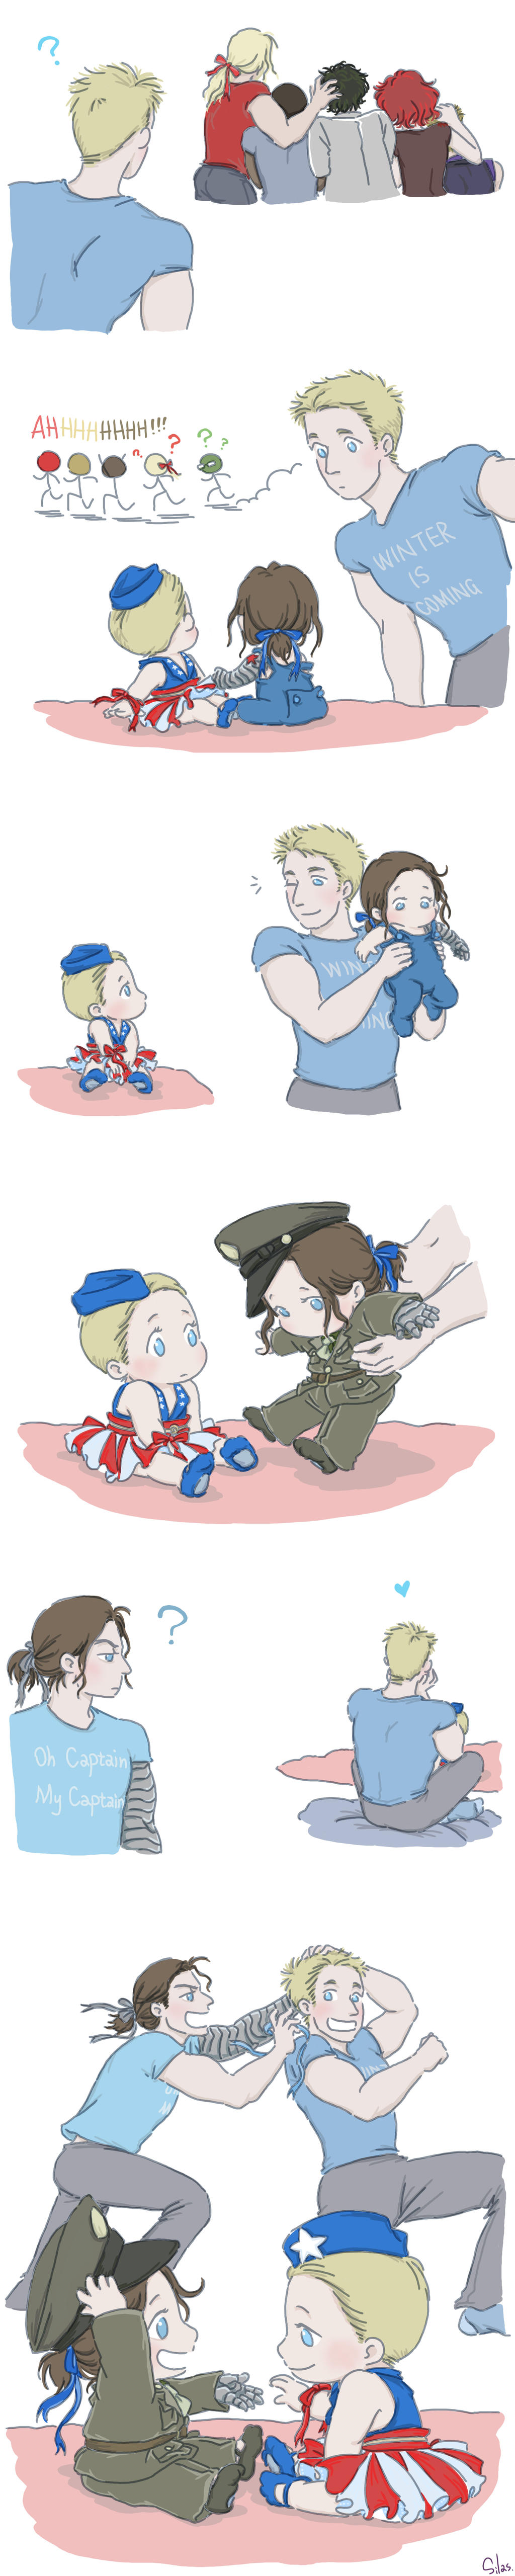 Steve and Bucky Babies: Ribbon 2